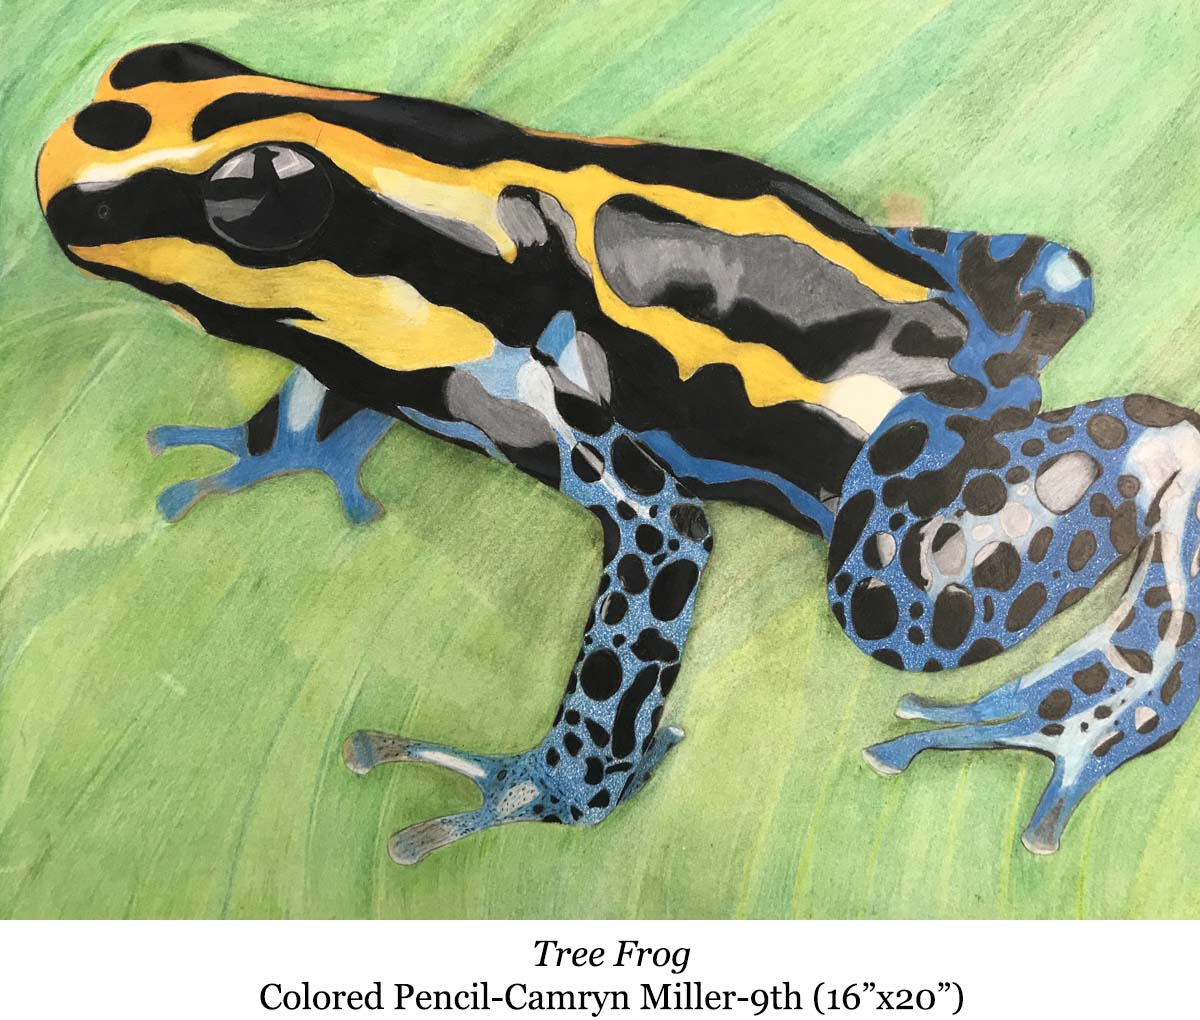 1587088179-tree_frog-colored_pencil-camryn_miller-9th__16_x20__